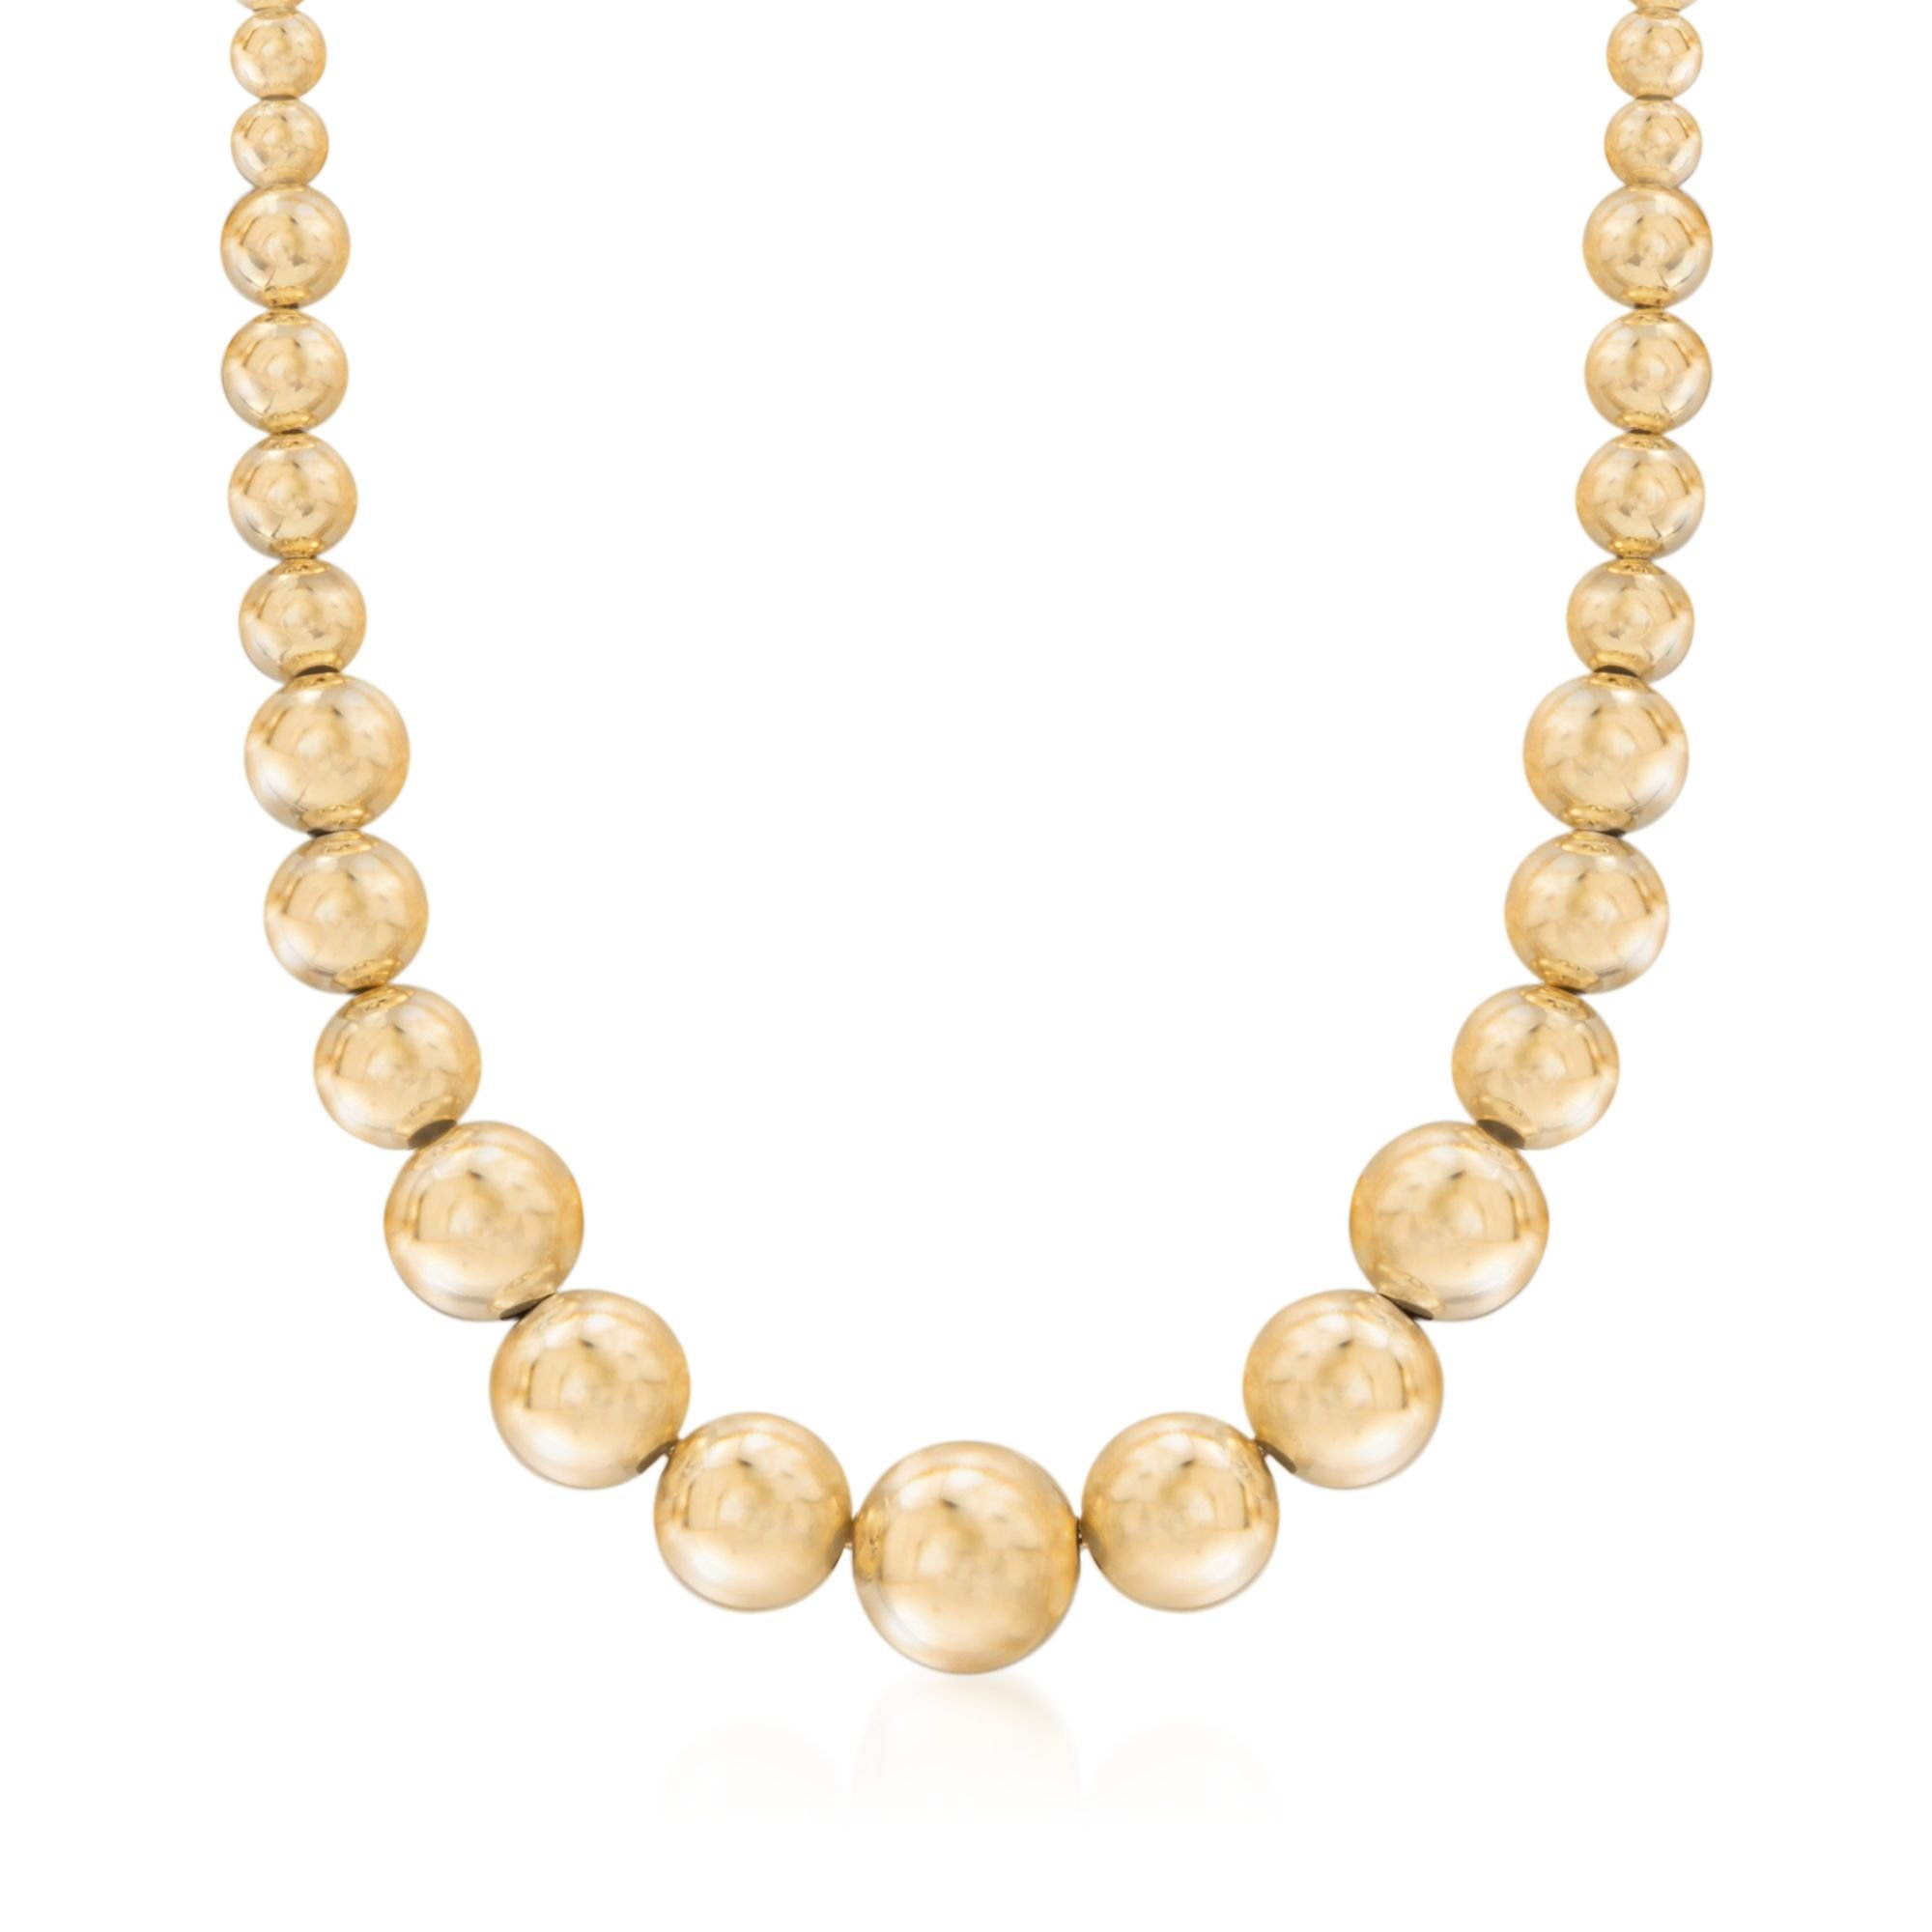 Ross-Simons Italian 6-14mm 18kt Gold Over Sterling Silver Graduated Bead Necklace by Ross-Simons (Image #1)